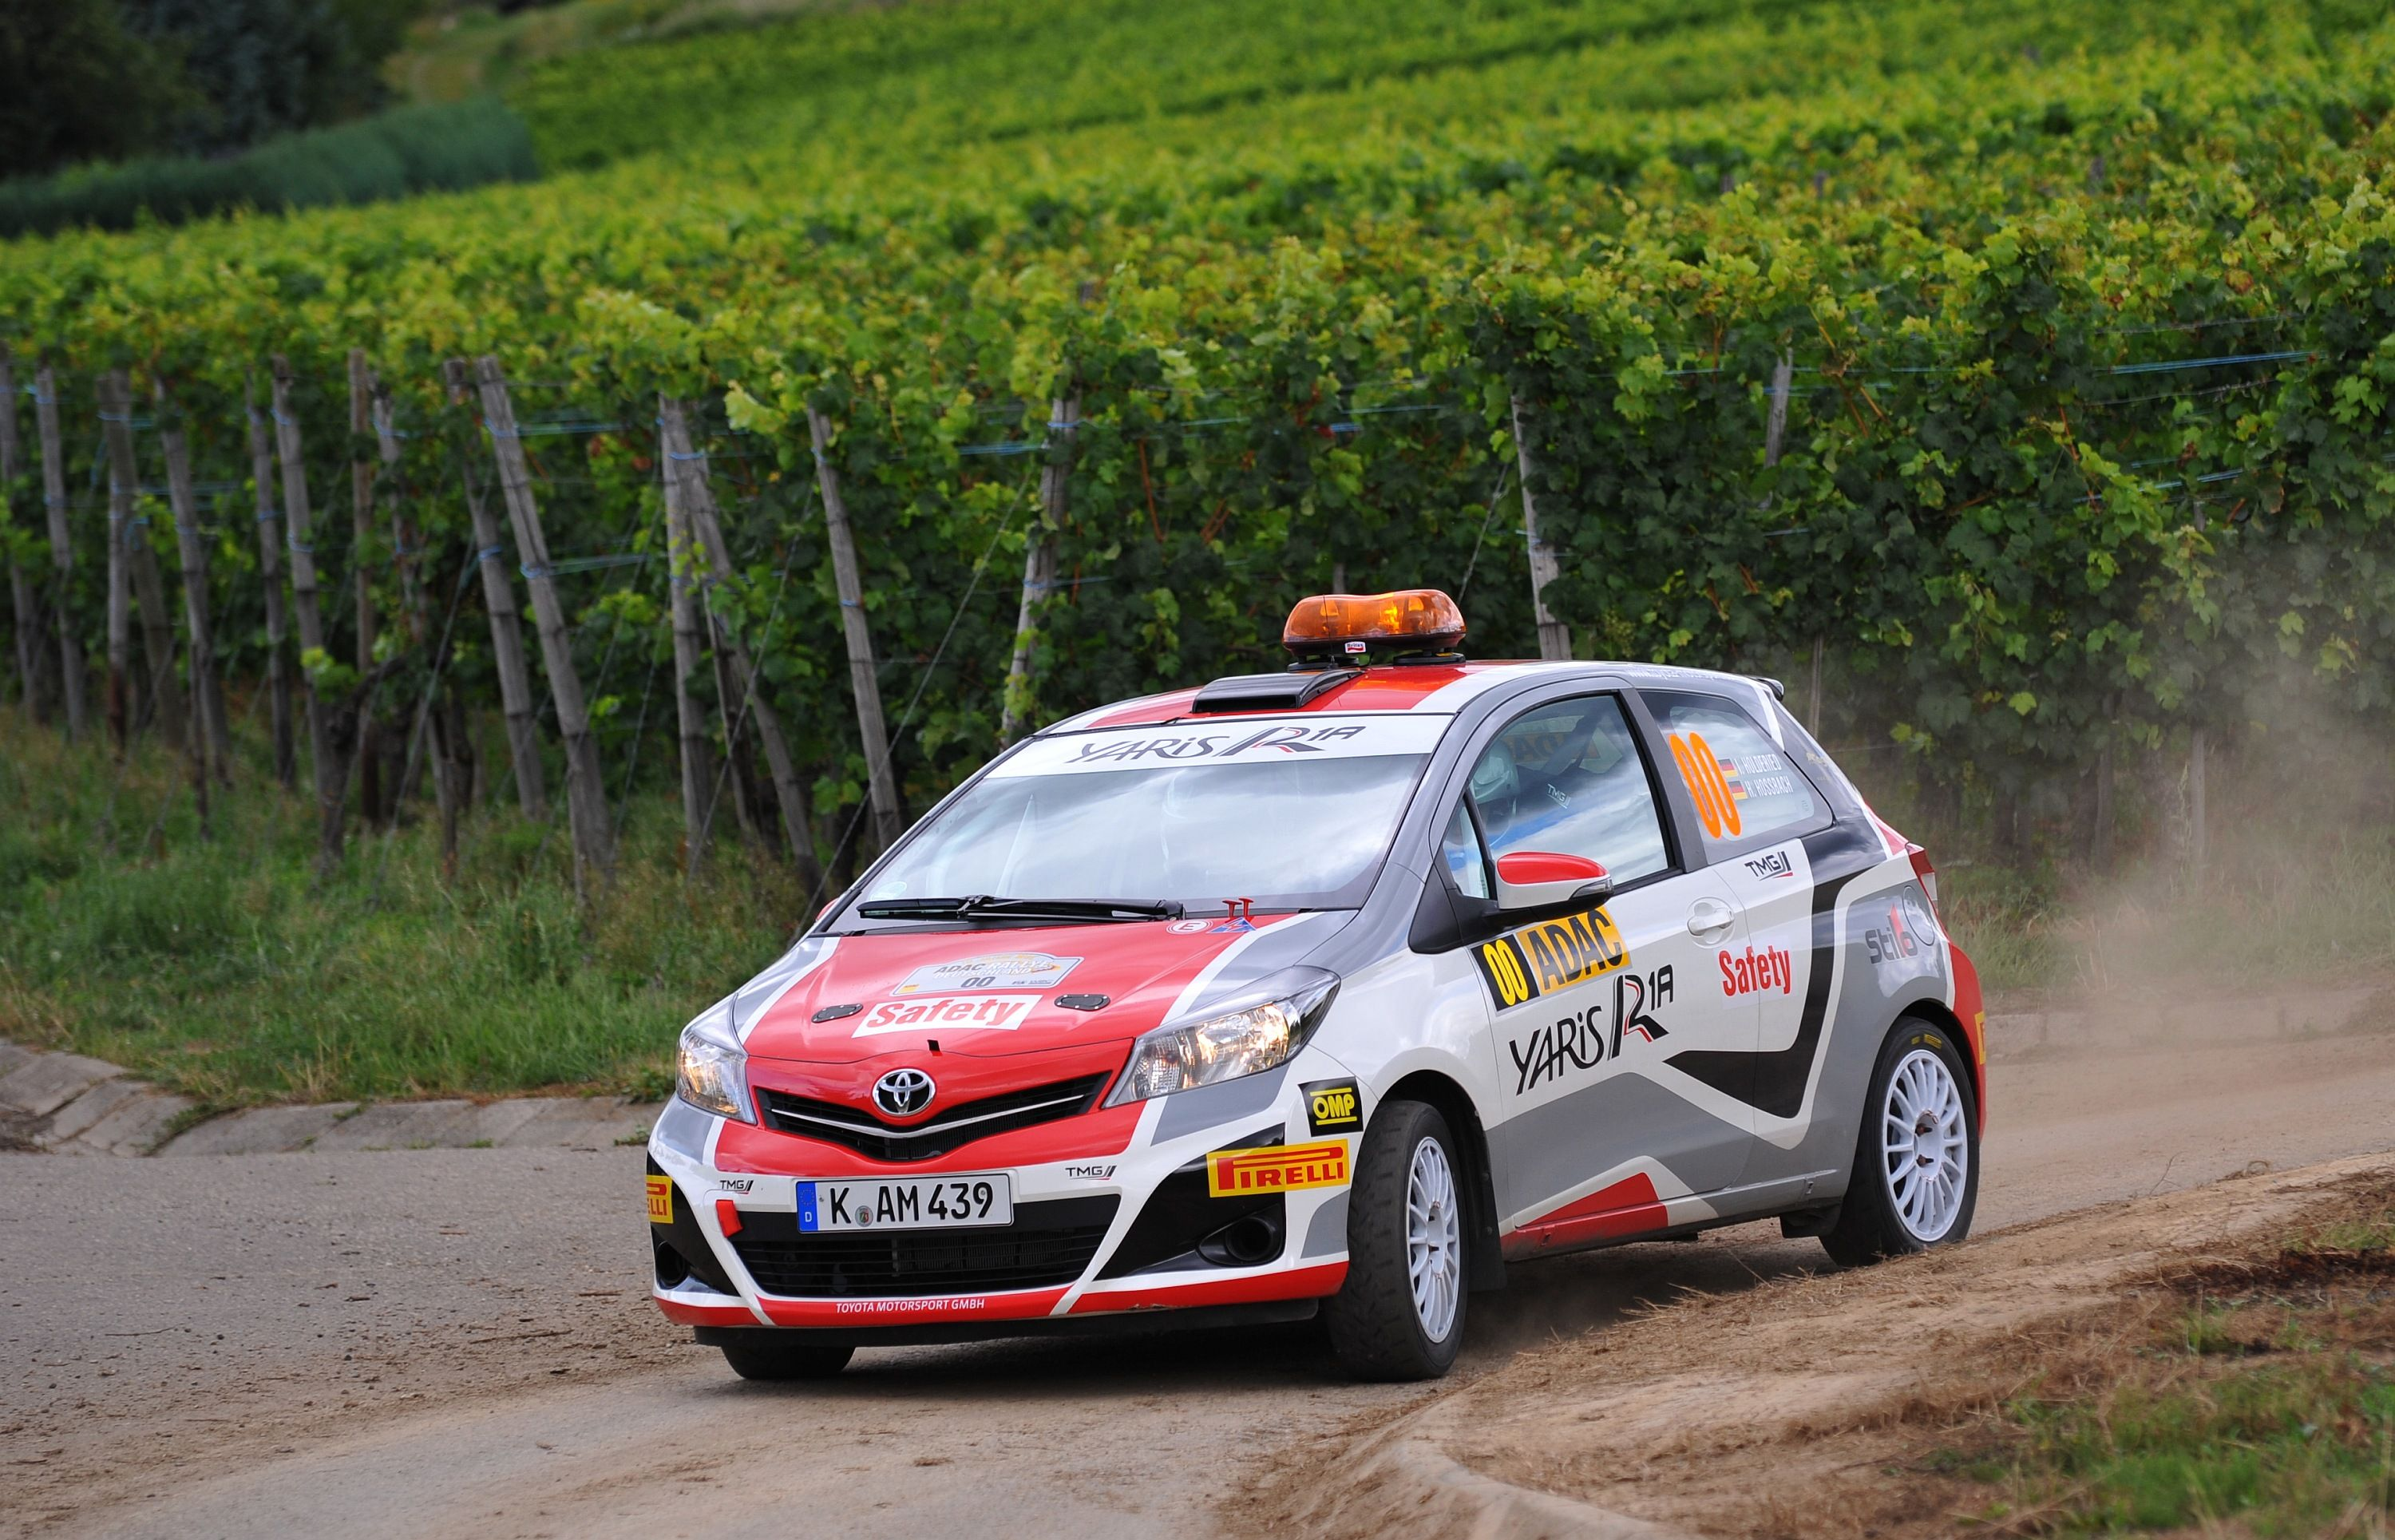 Toyota Vitz R1 | Rally Cars | Pinterest | Toyota, Rally car and Rally